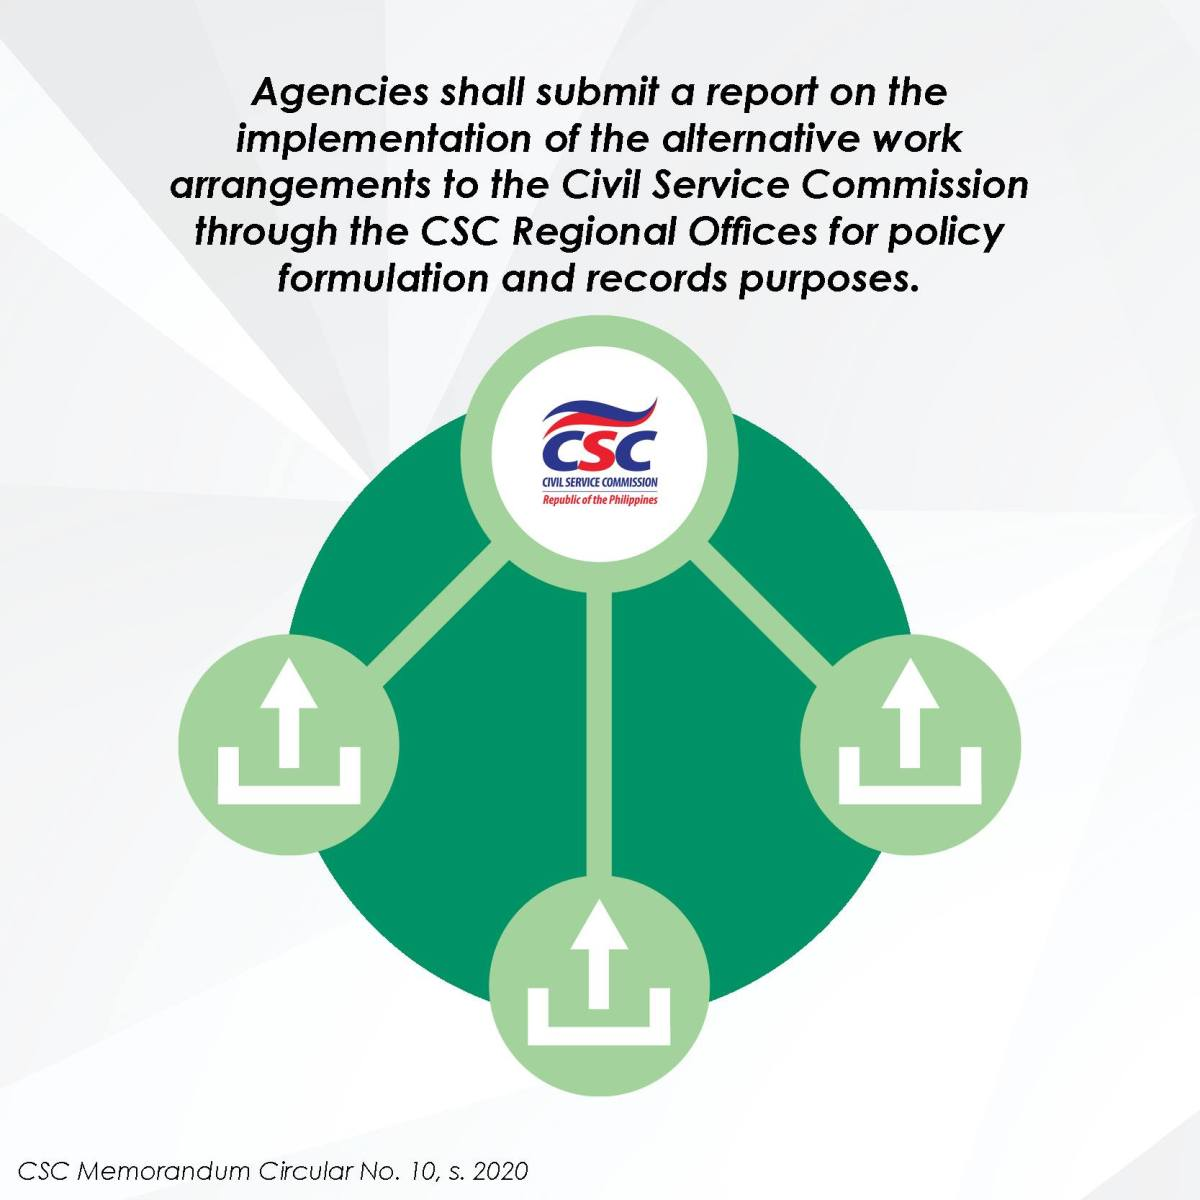 Agencies shall submit a report